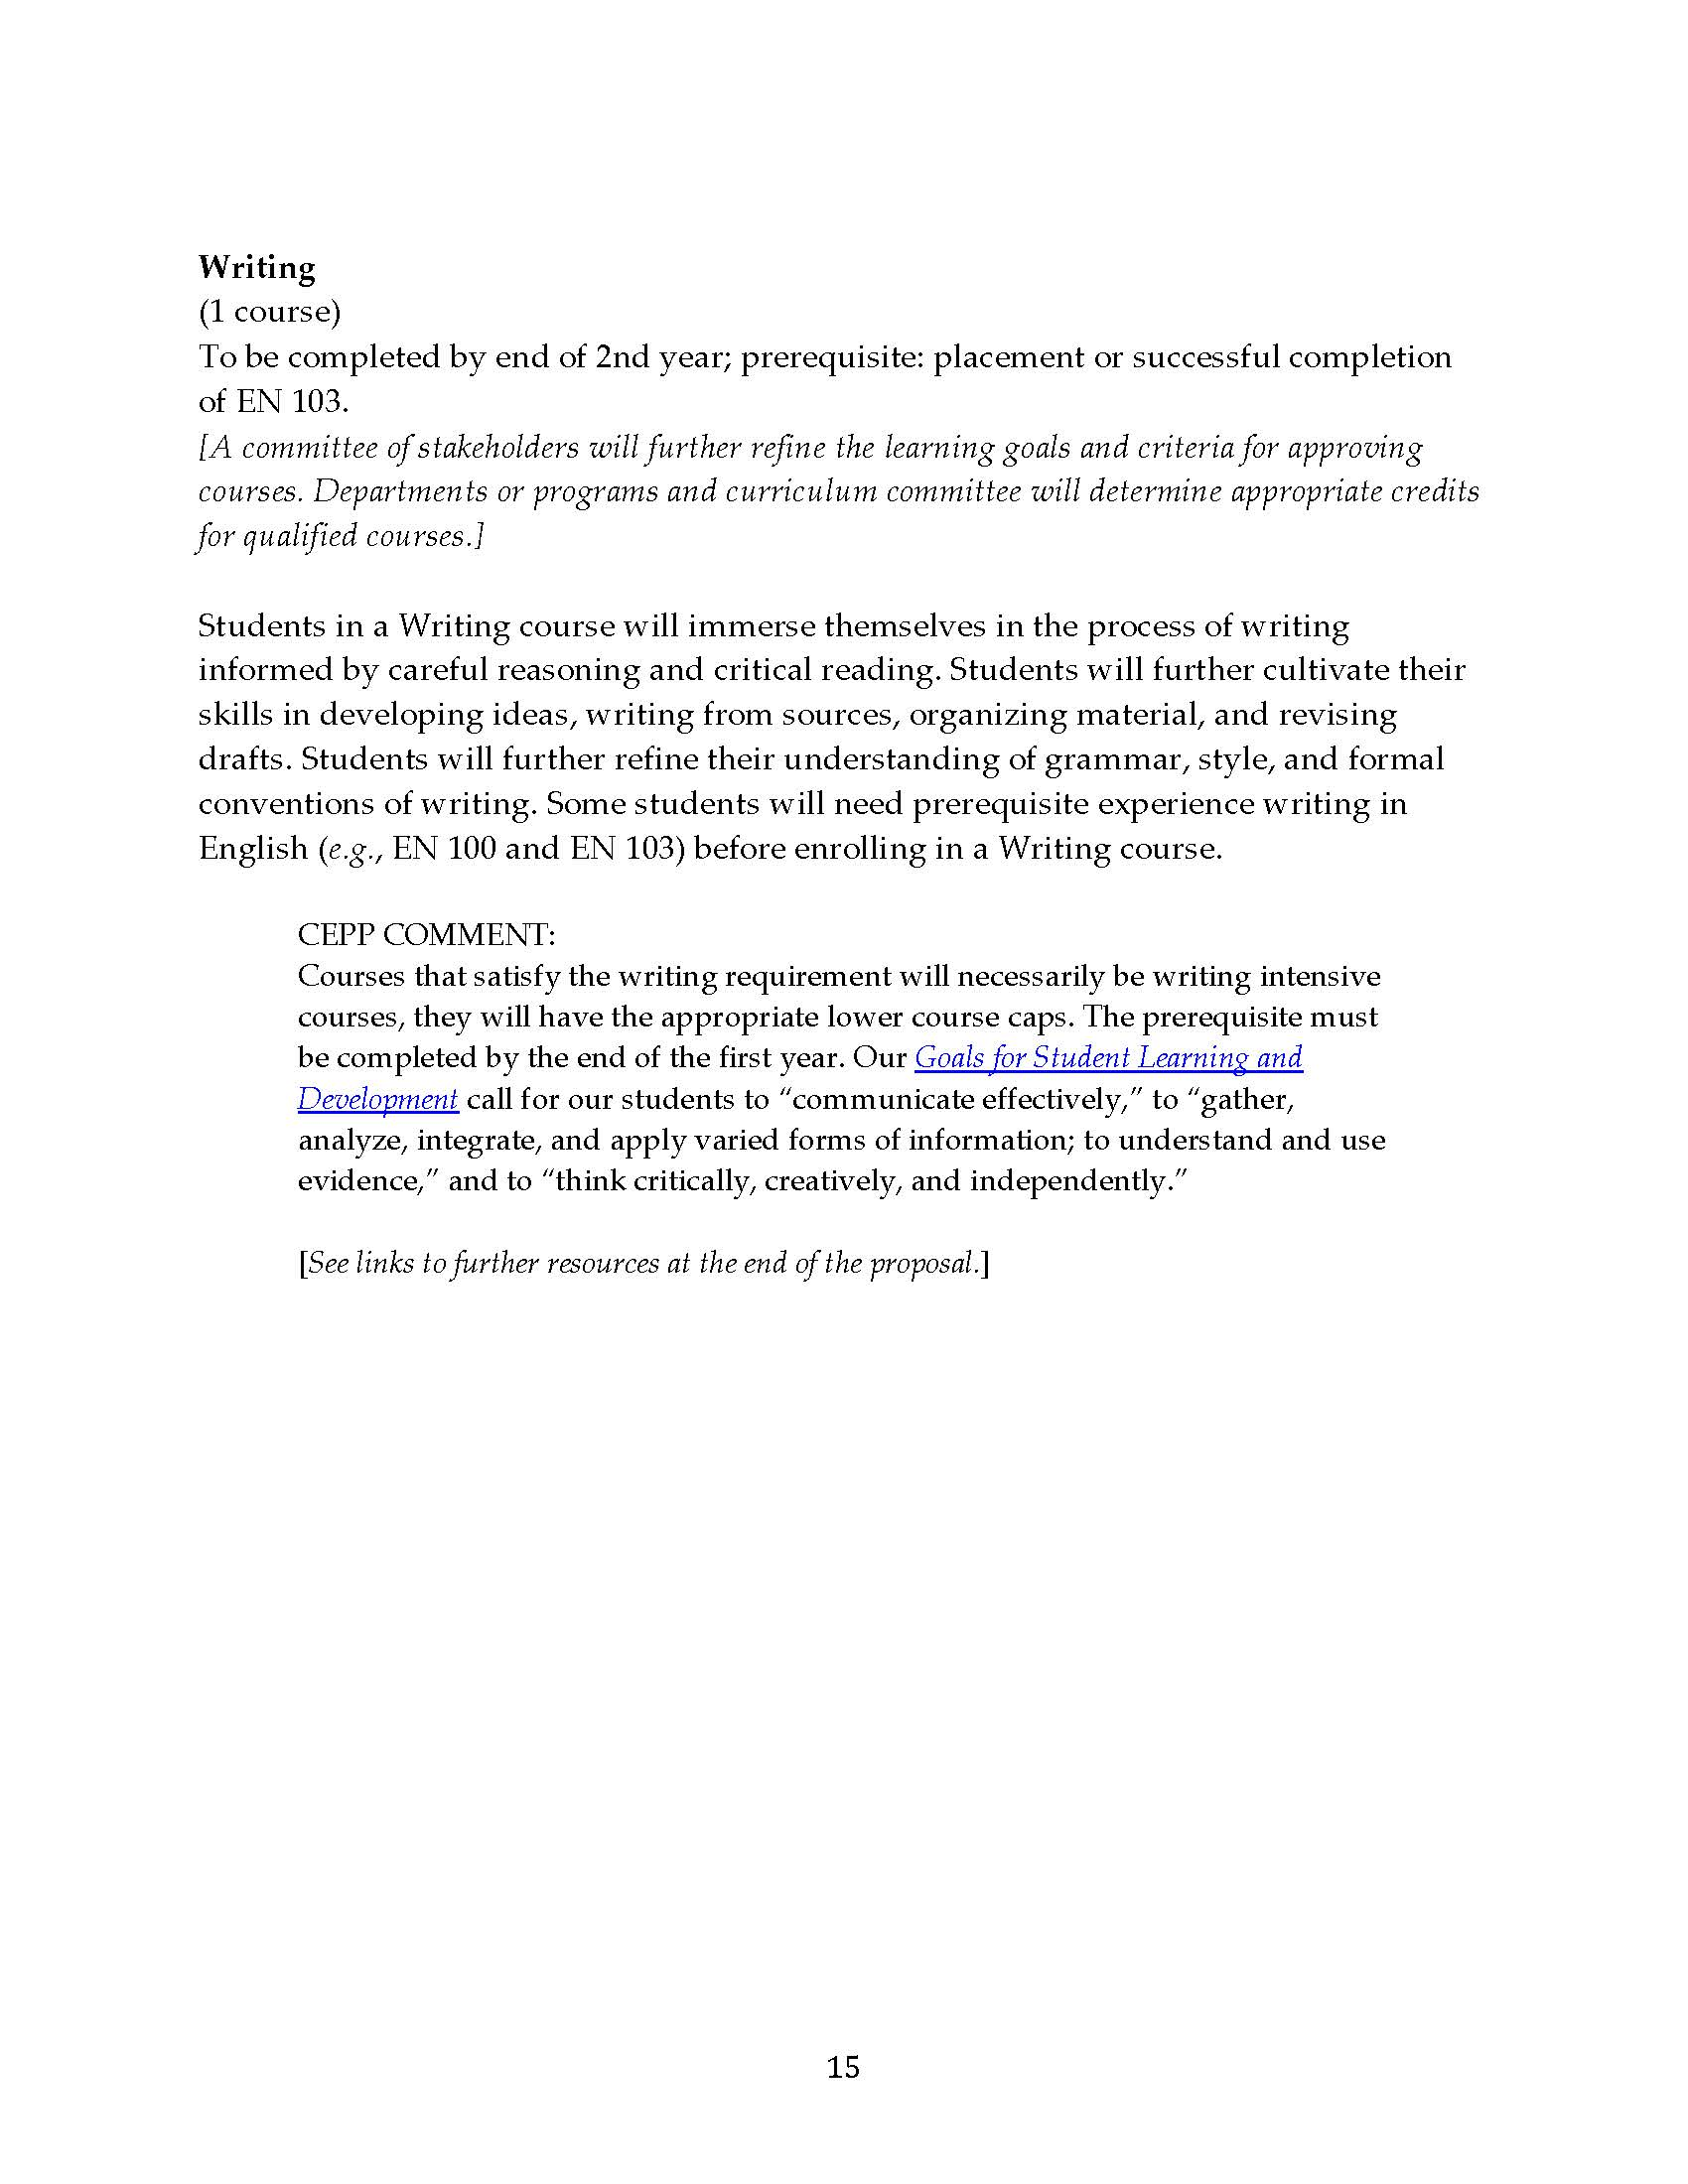 General Education Proposal February 28 2017_Page_15.jpg